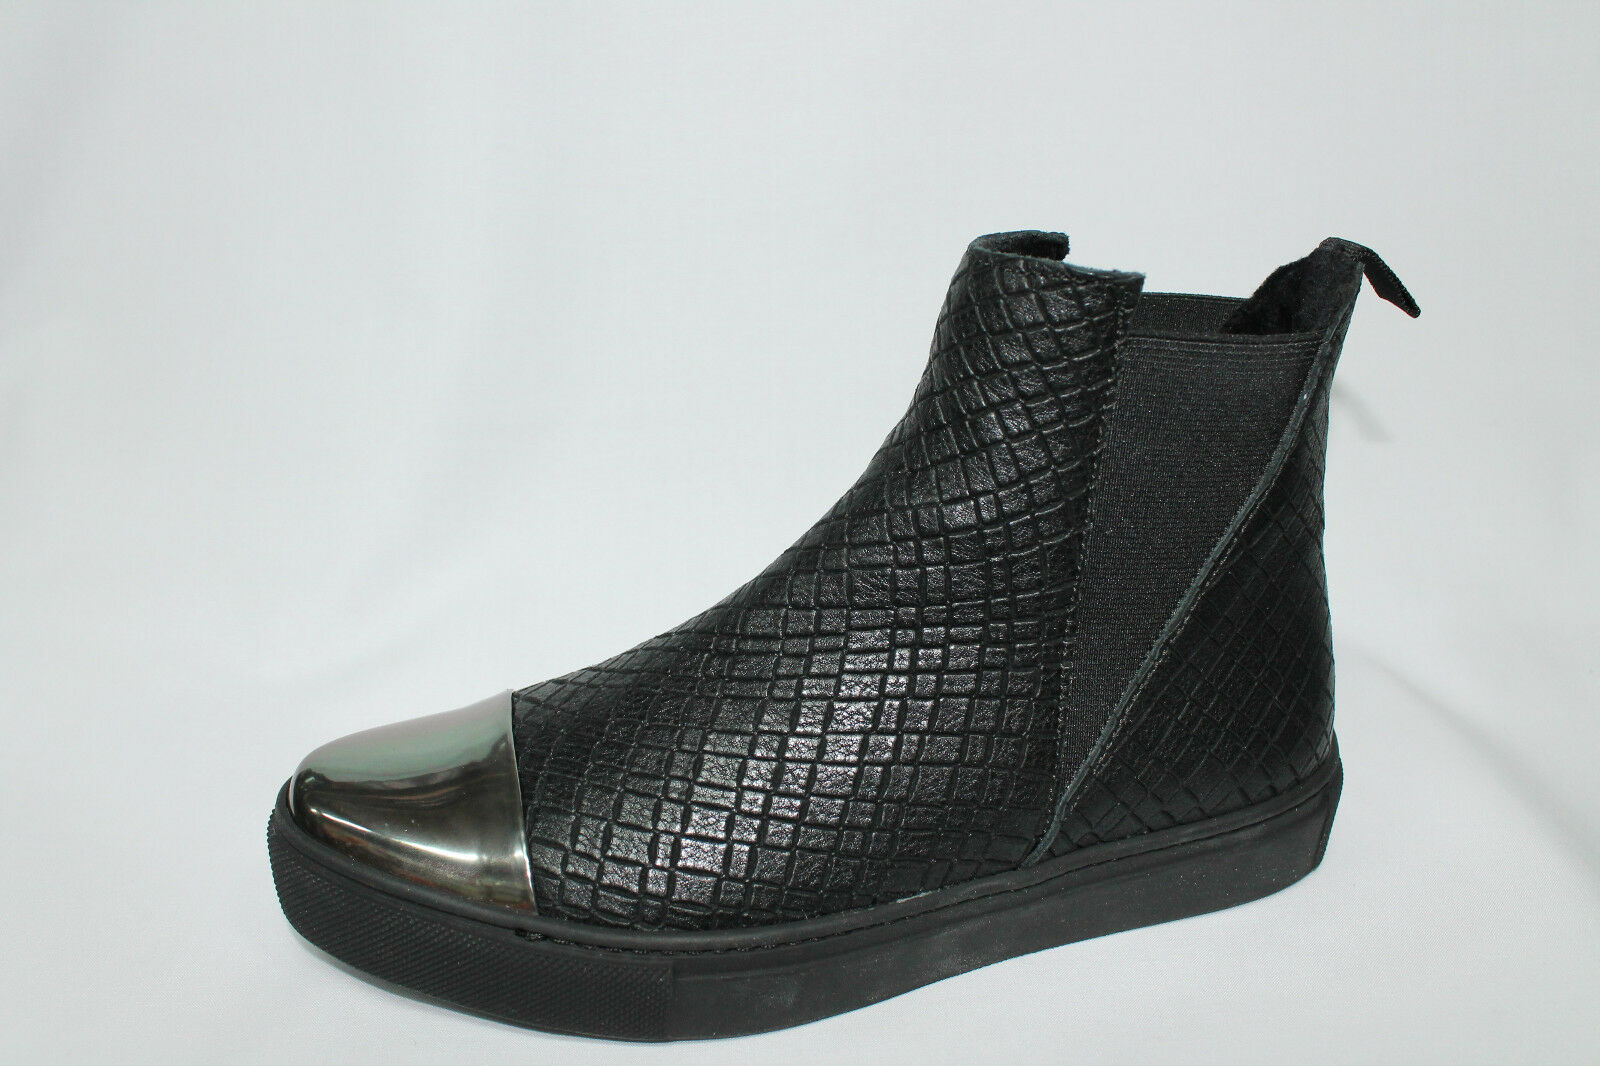 Zapatos casuales salvajes 39M2 Stivaletti Sneakers Chelsea Frau 39M2 salvajes nero Made in Italy listino€105 - 20% 2ec6d1